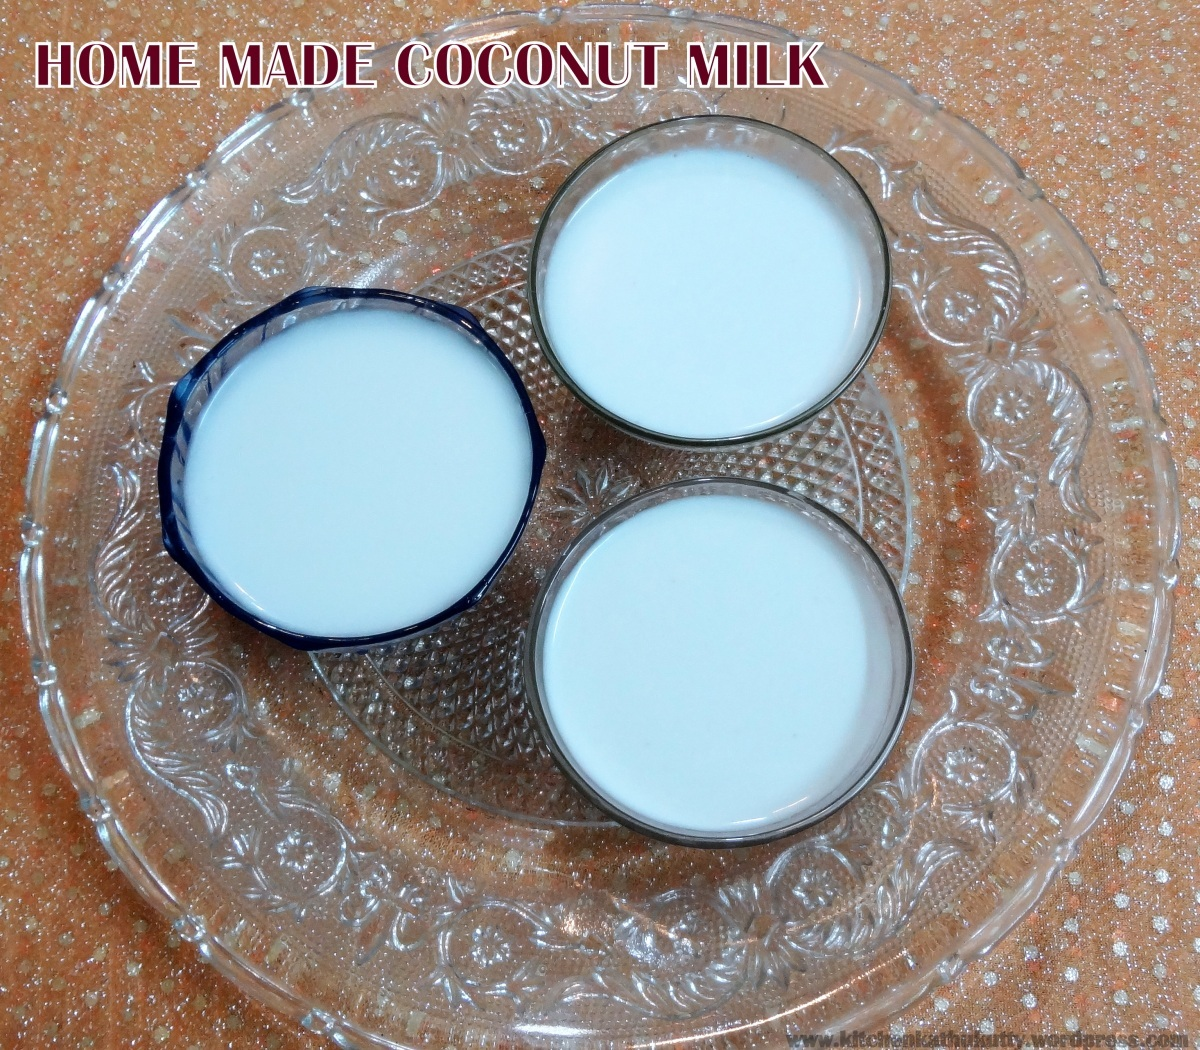 HOME MADE COCONUT MILK-How to make coconut milk?